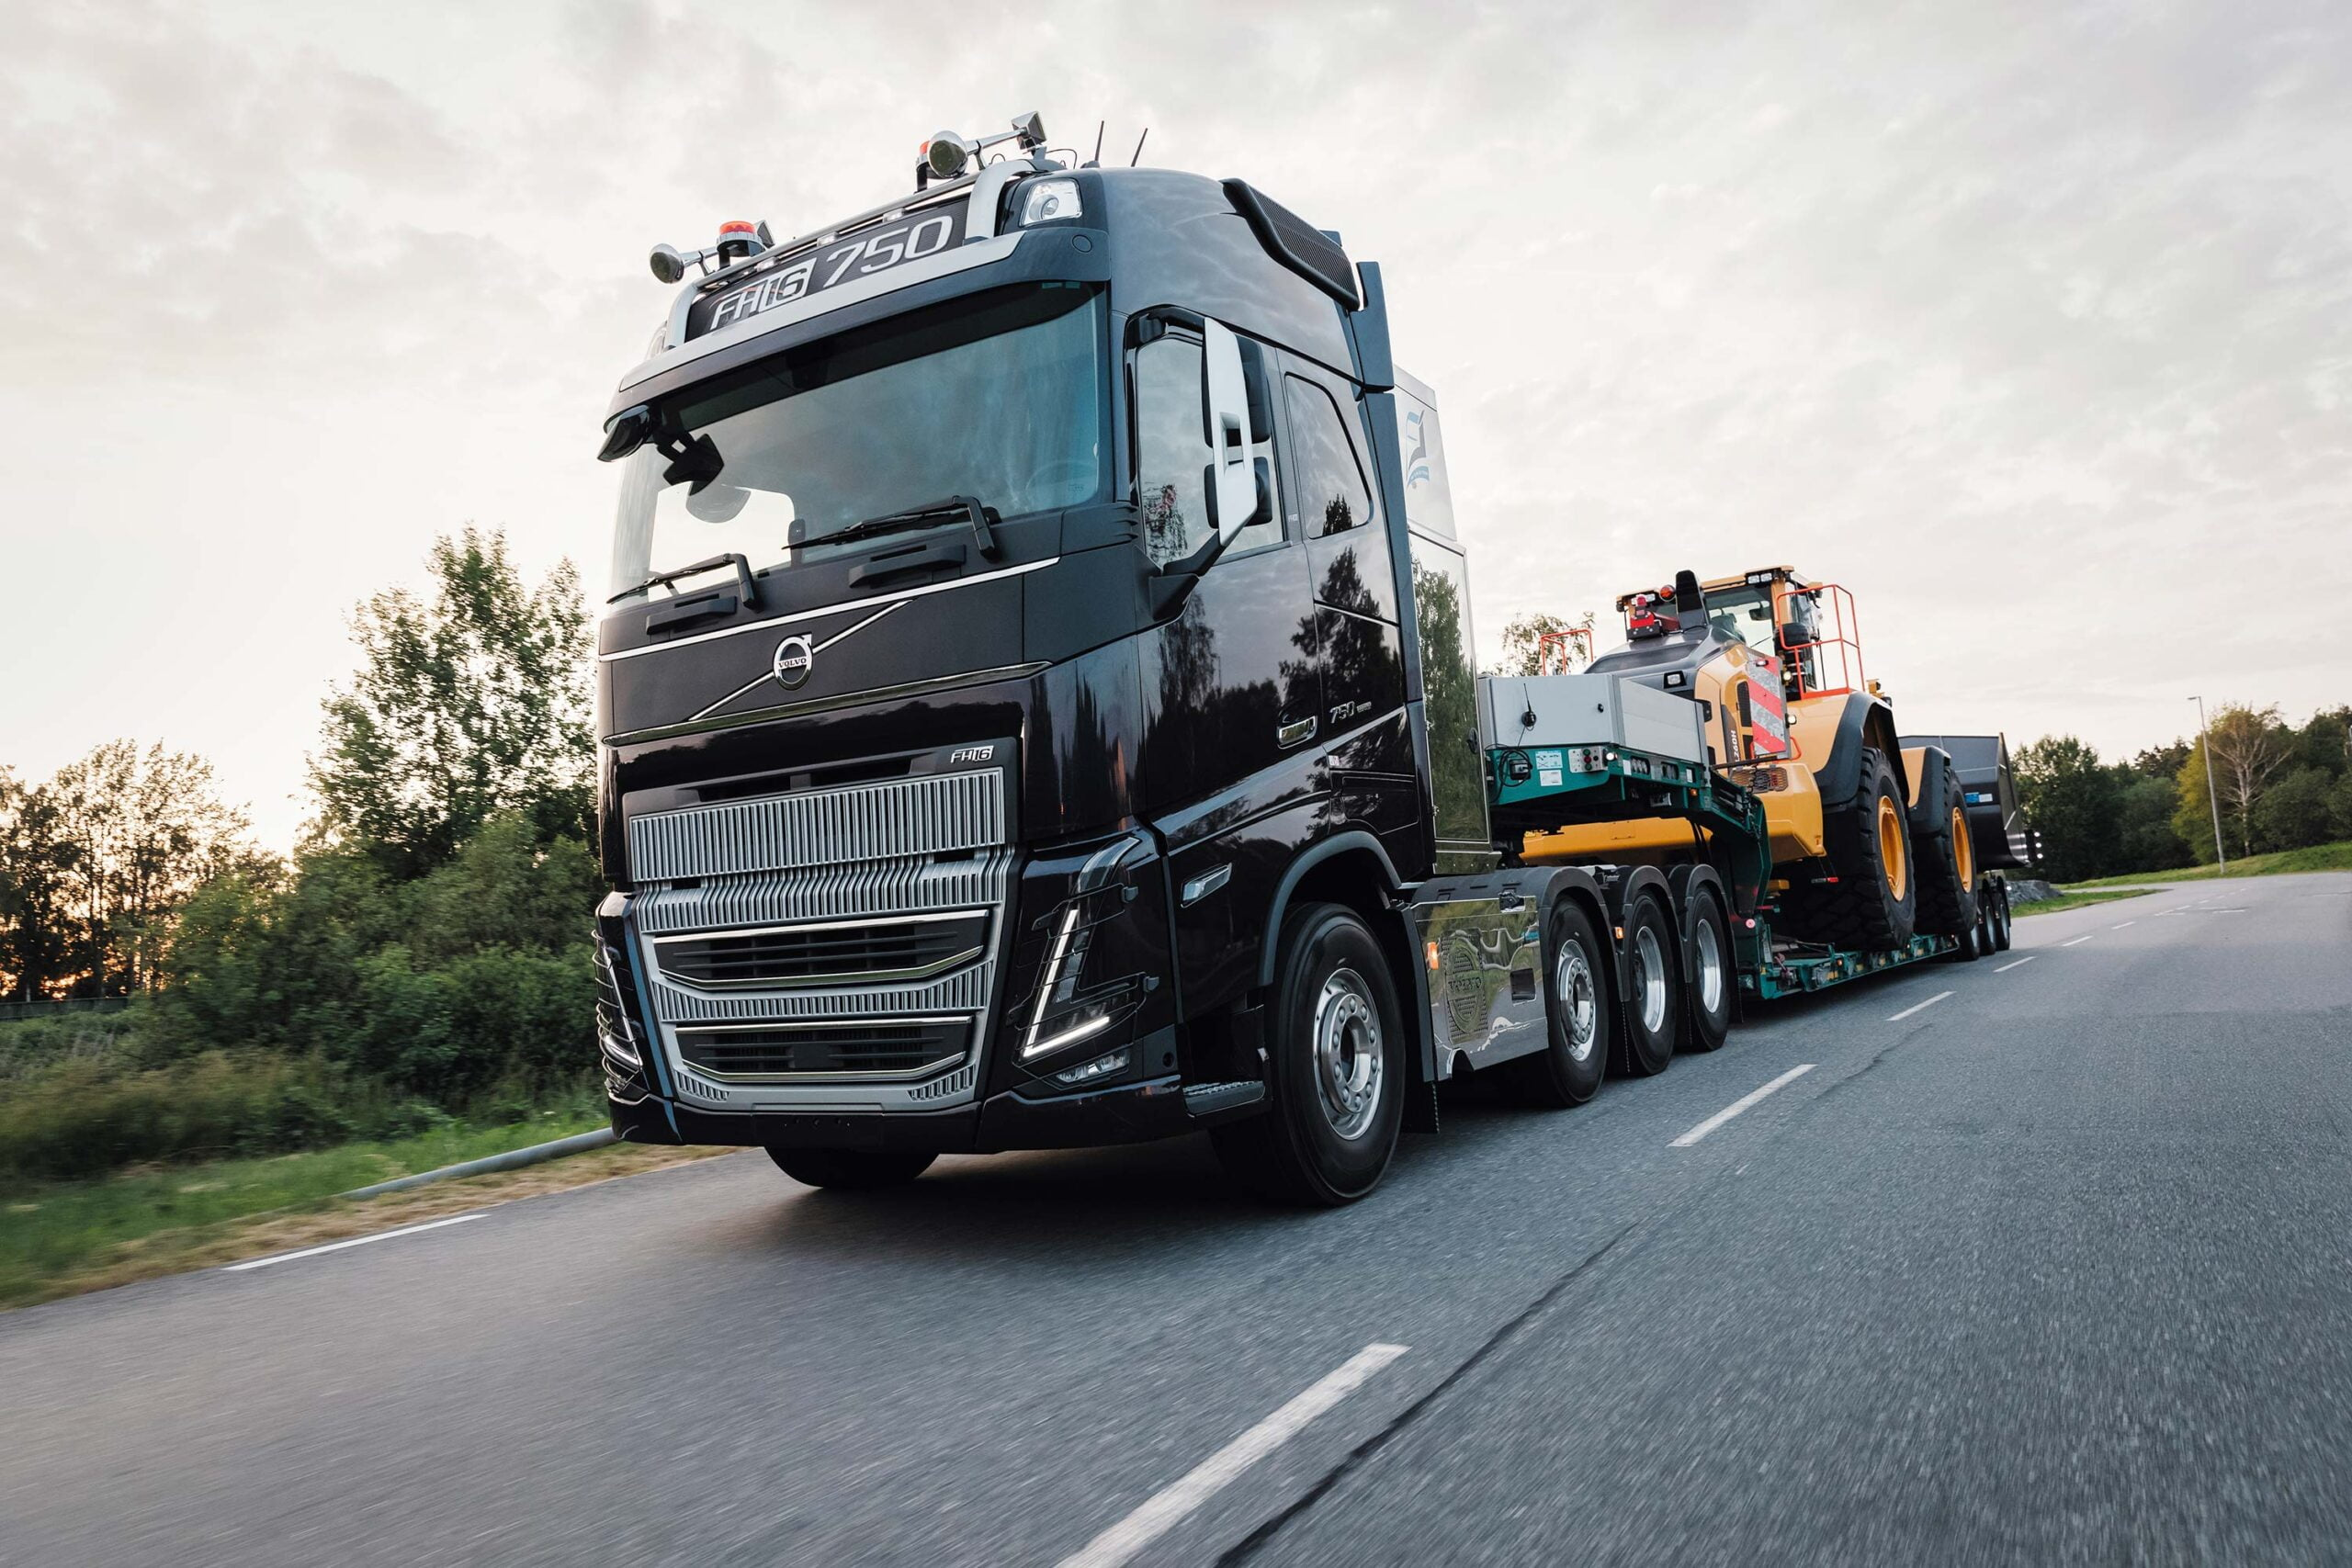 volvo-fh16-low-sleeper-volvo-fh16-image-gallery-img5-scaled